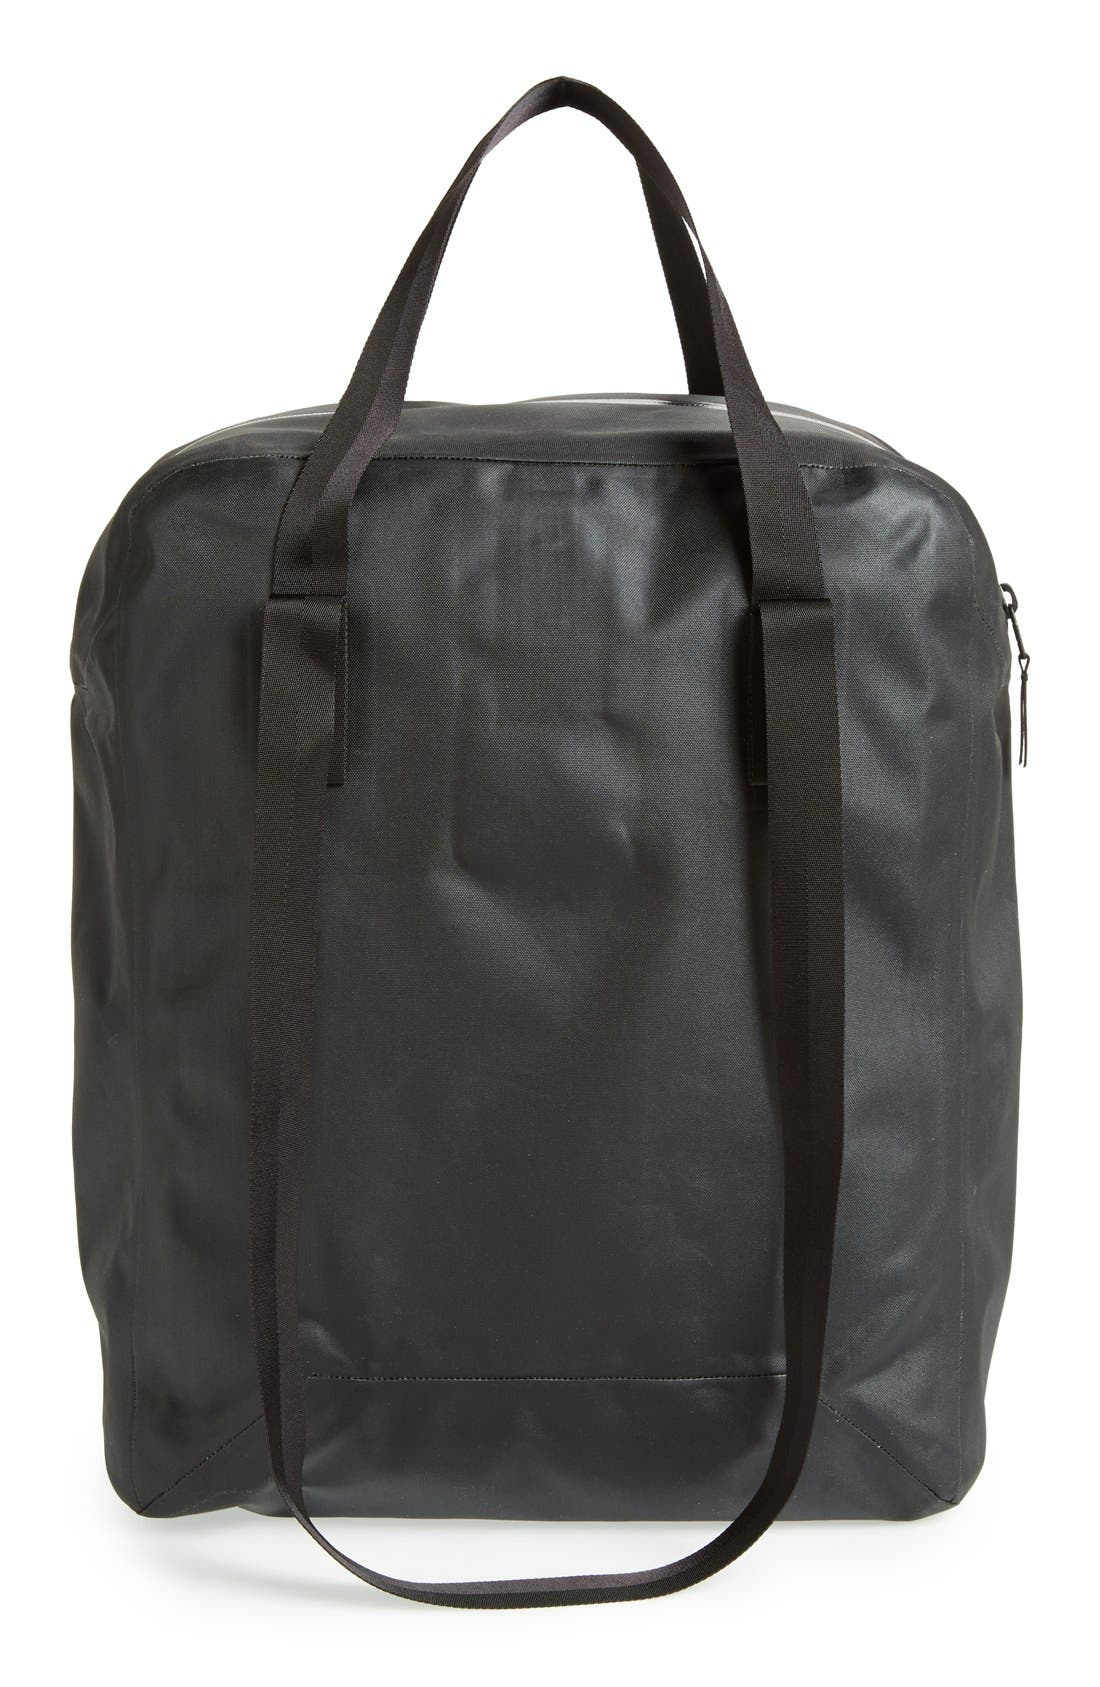 'Seque' Water Resistant Nylon Tote,                             Alternate thumbnail 4, color,                             001